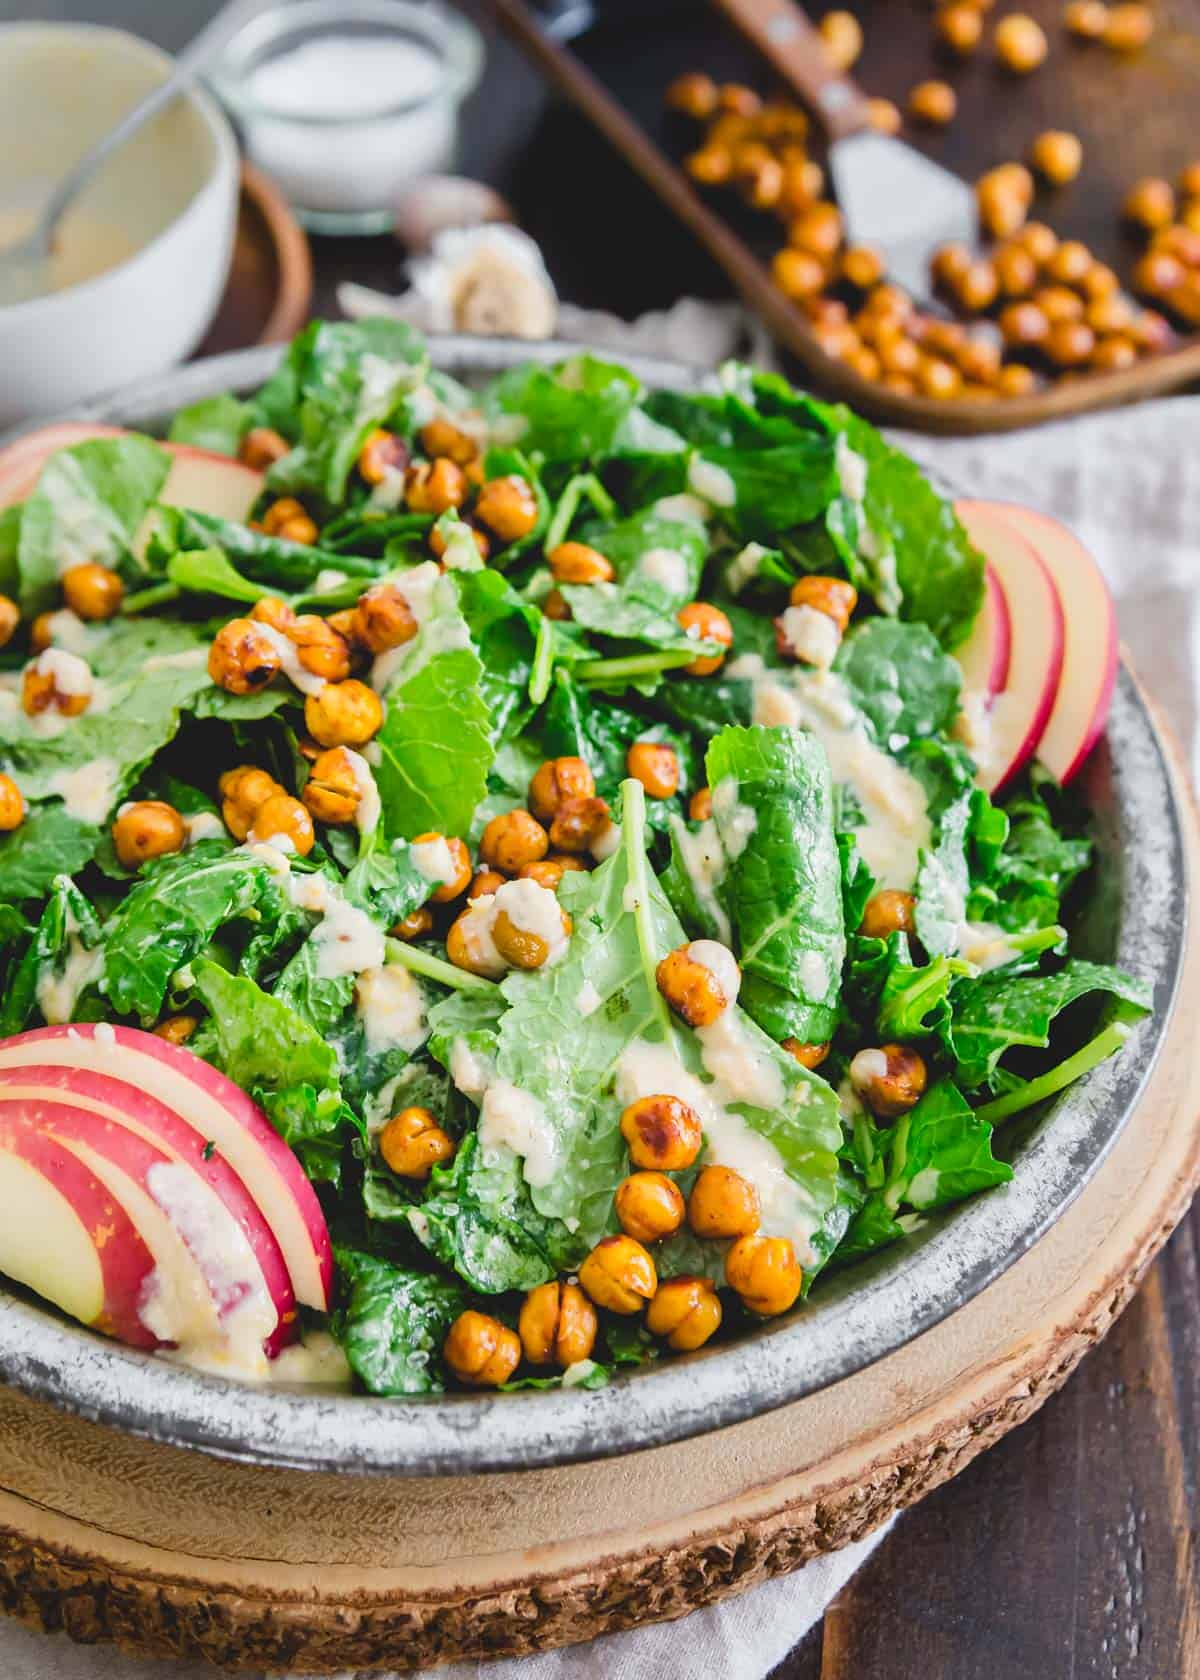 The best tasting recipe for a quick and easy baby kale salad! Tossed in a simple tahini dressing and topped with roasted BBQ chickpeas and apple slices, it's a complete plant-based meal with little effort.